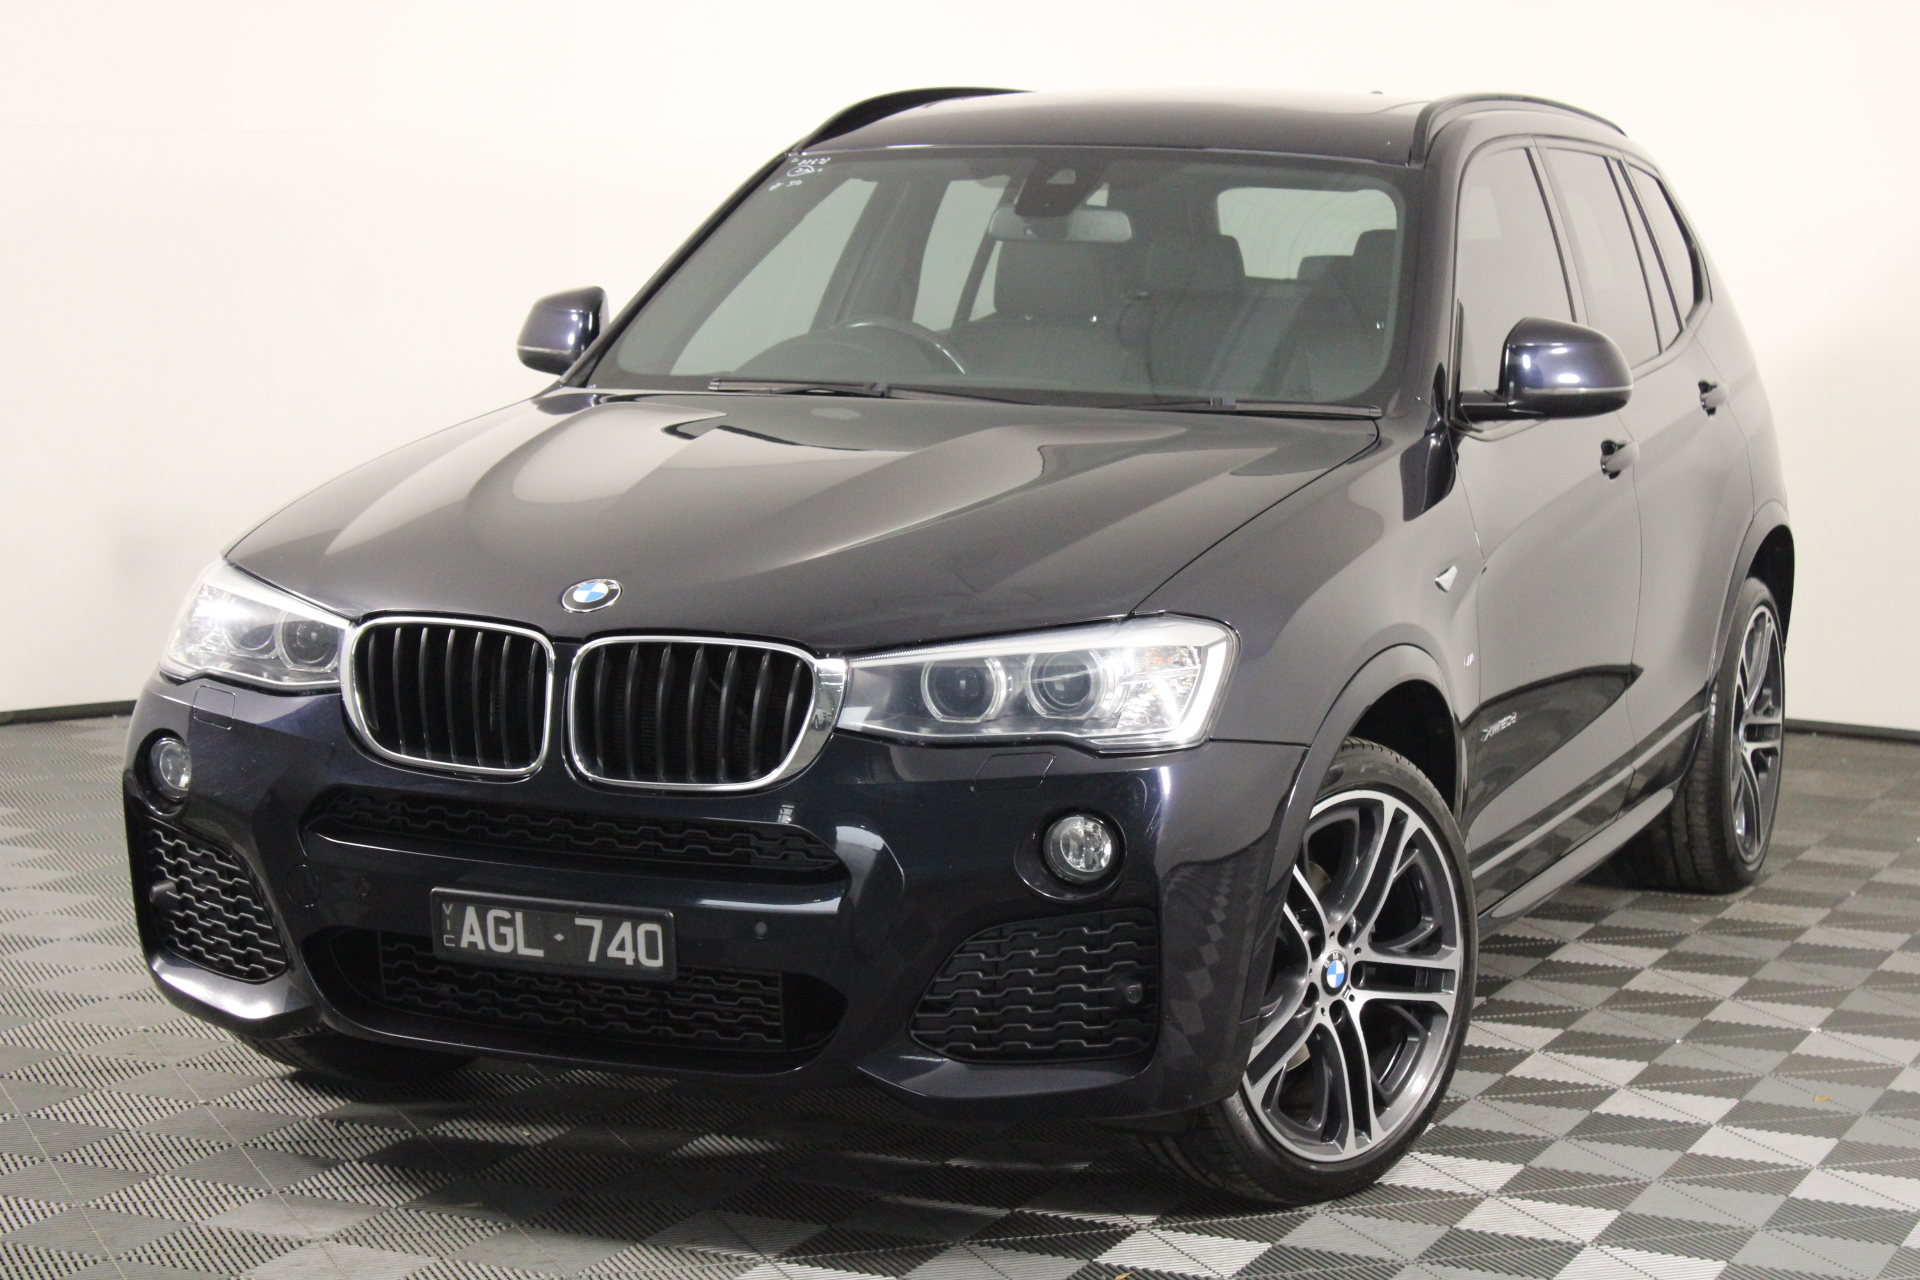 2016 BMW X3 xDrive 20d M Sport LCI Update F25 Turbo Diesel Automatic